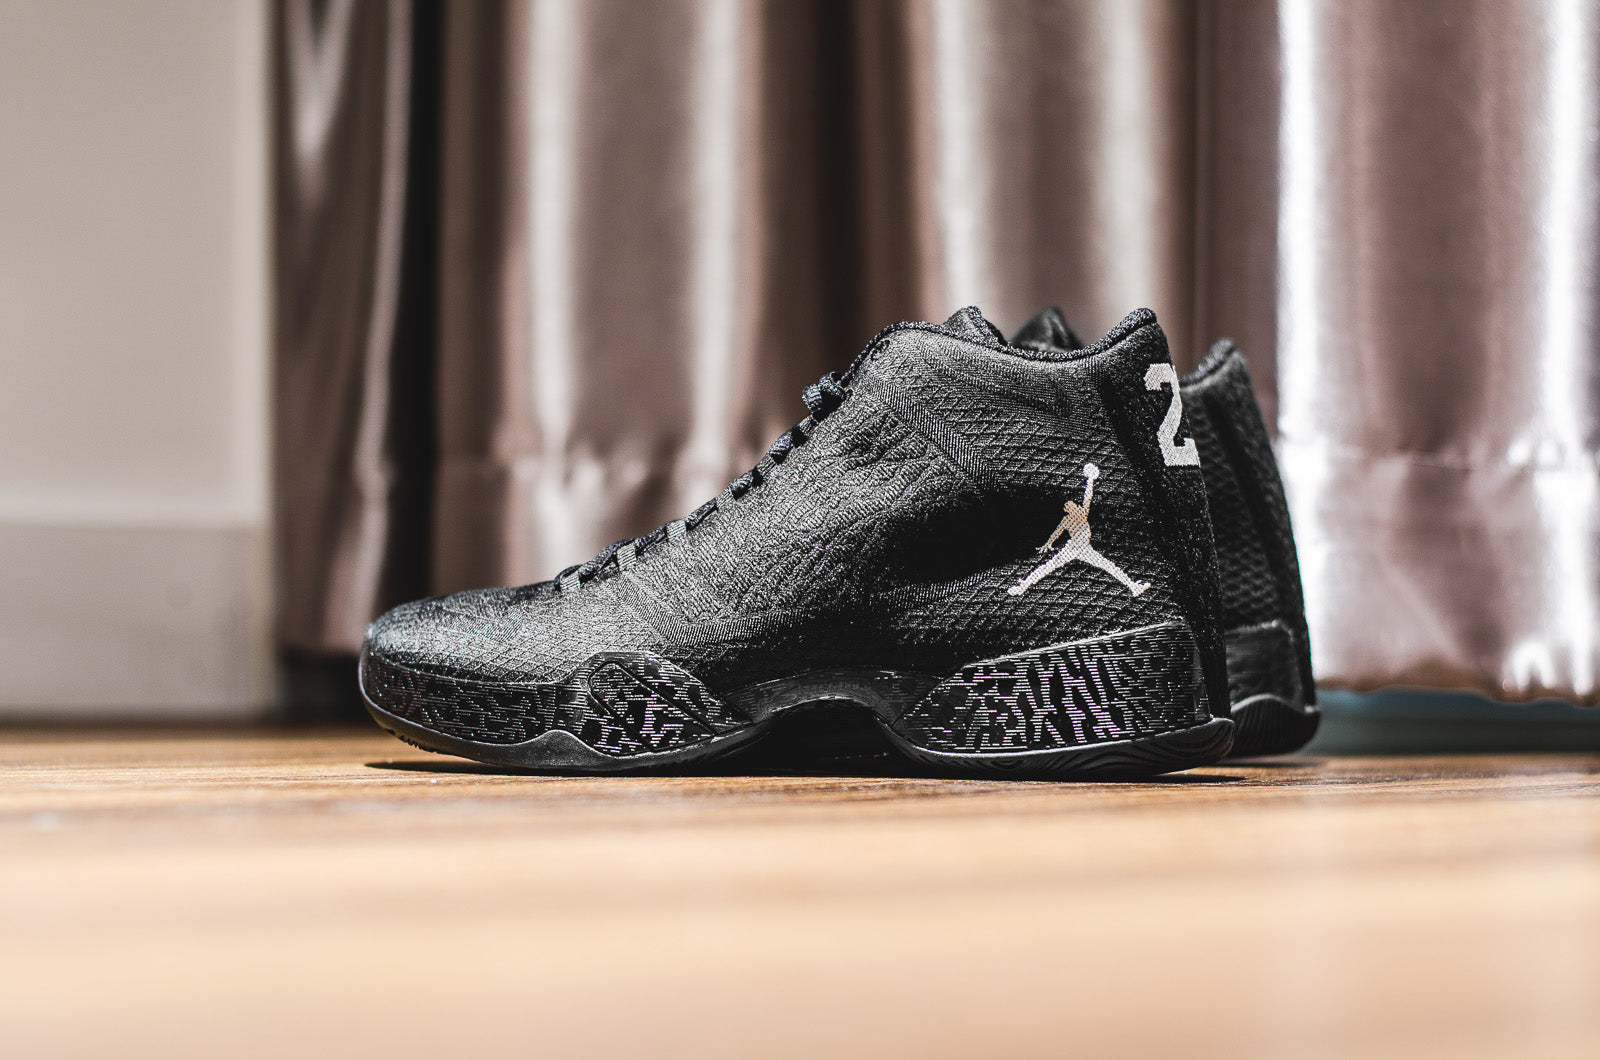 The Air Jordan XX9 Blackout Drops This Saturday December 6th 2014 Sizes 8 13 290 CAD